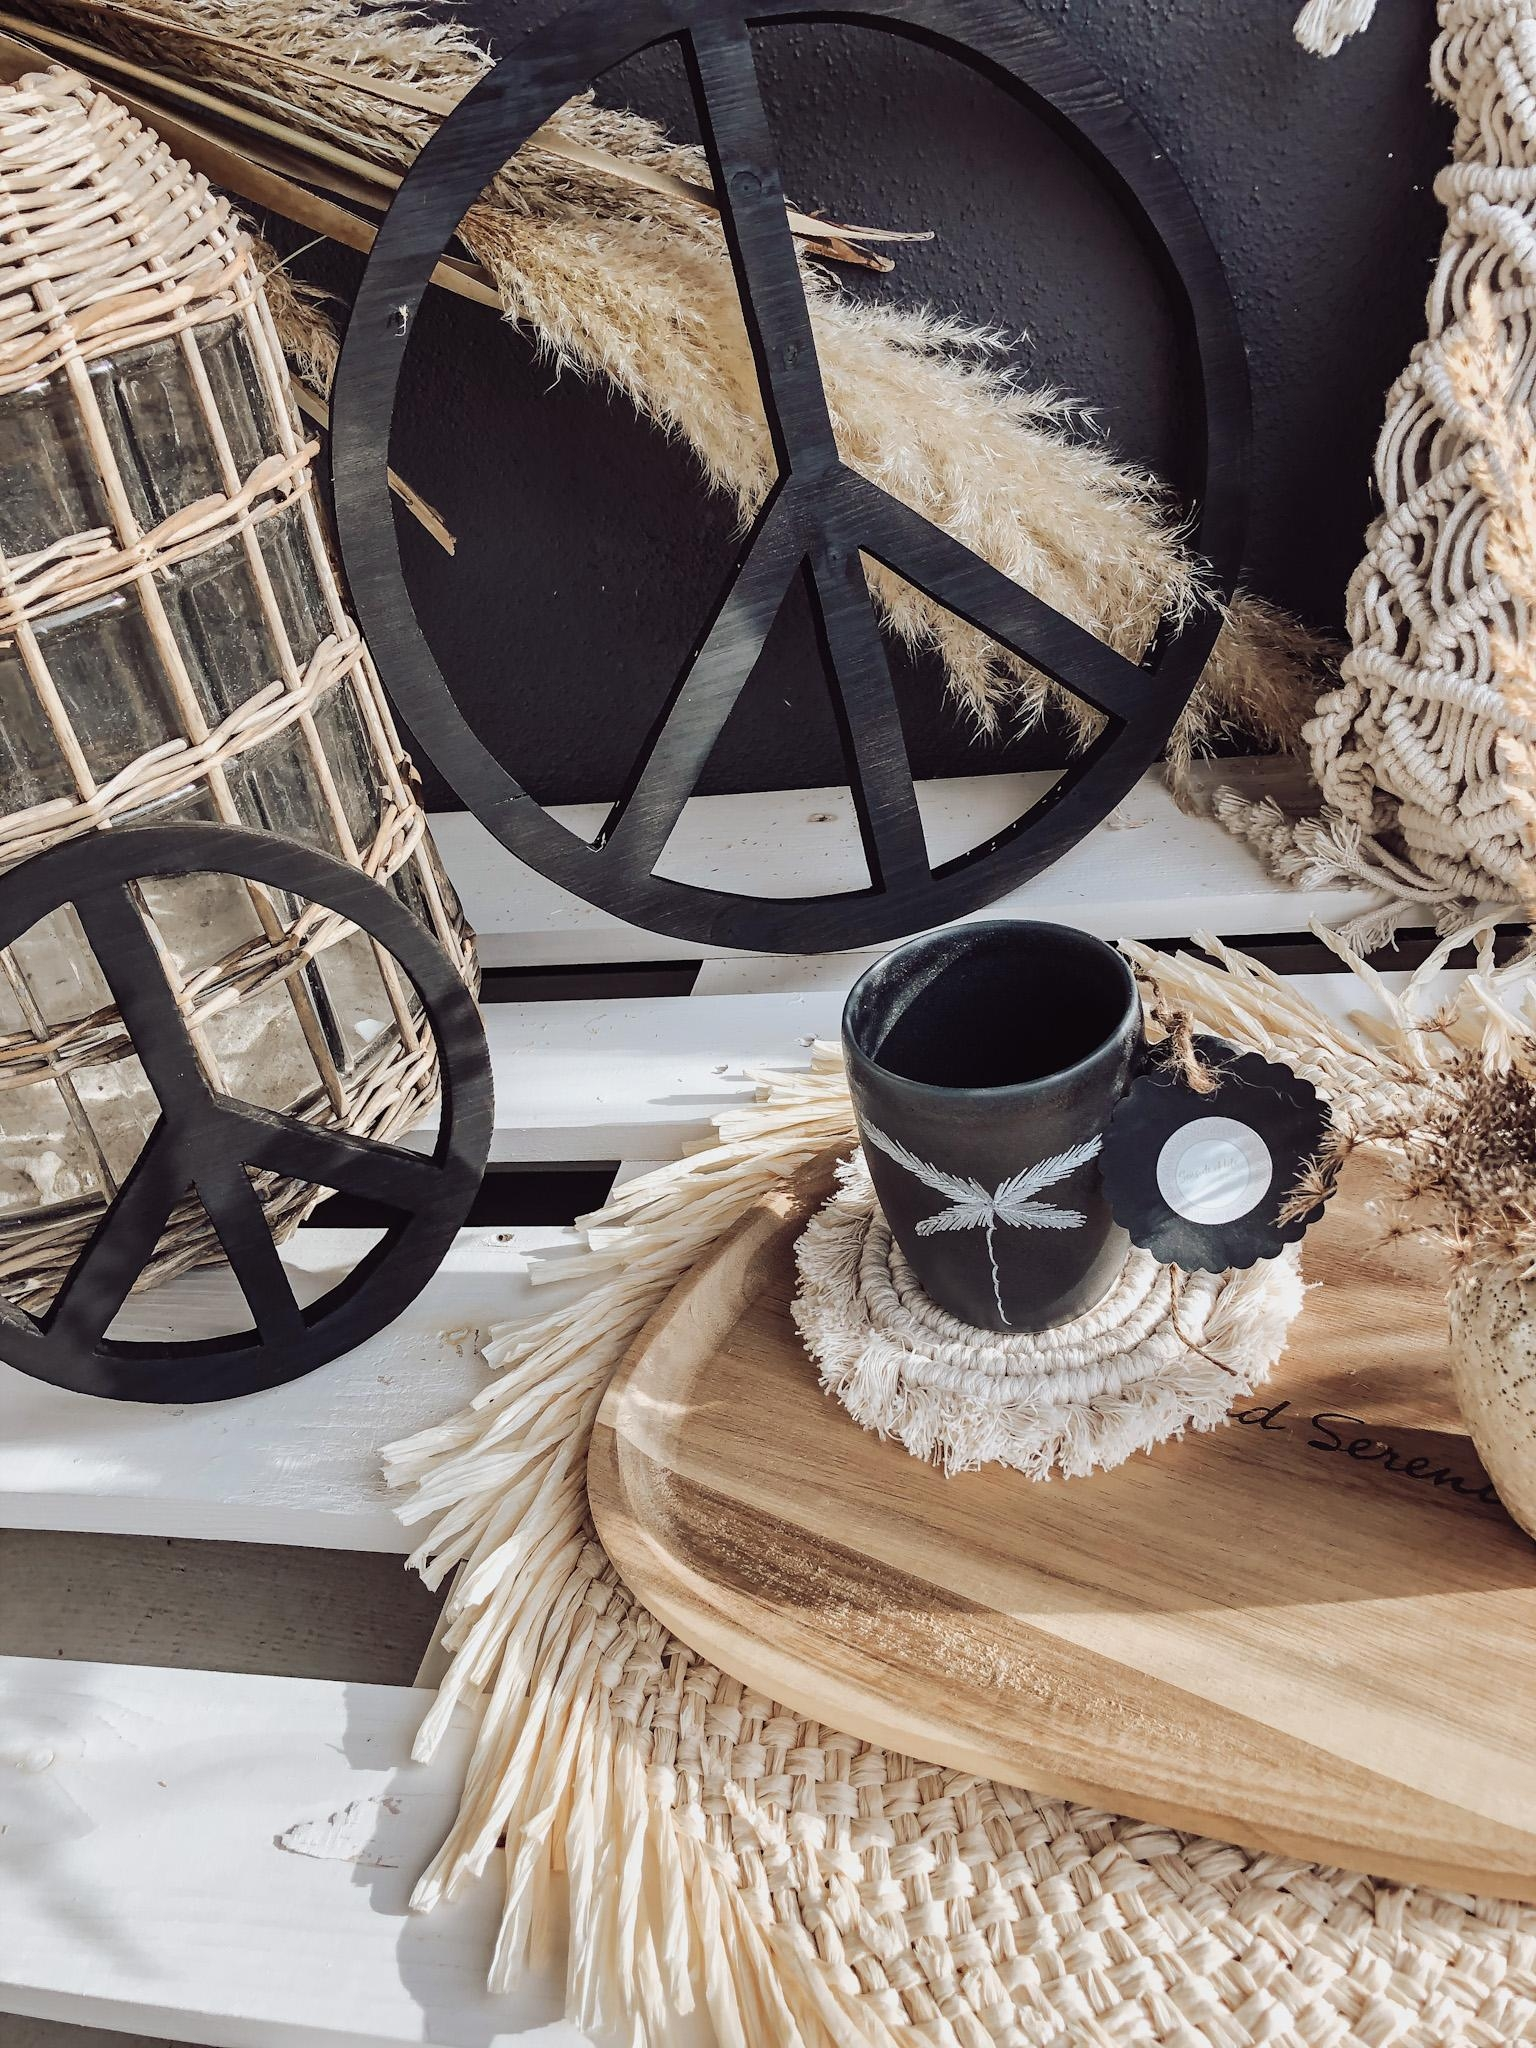 << Peaceful monday with Coffee & good vibes 